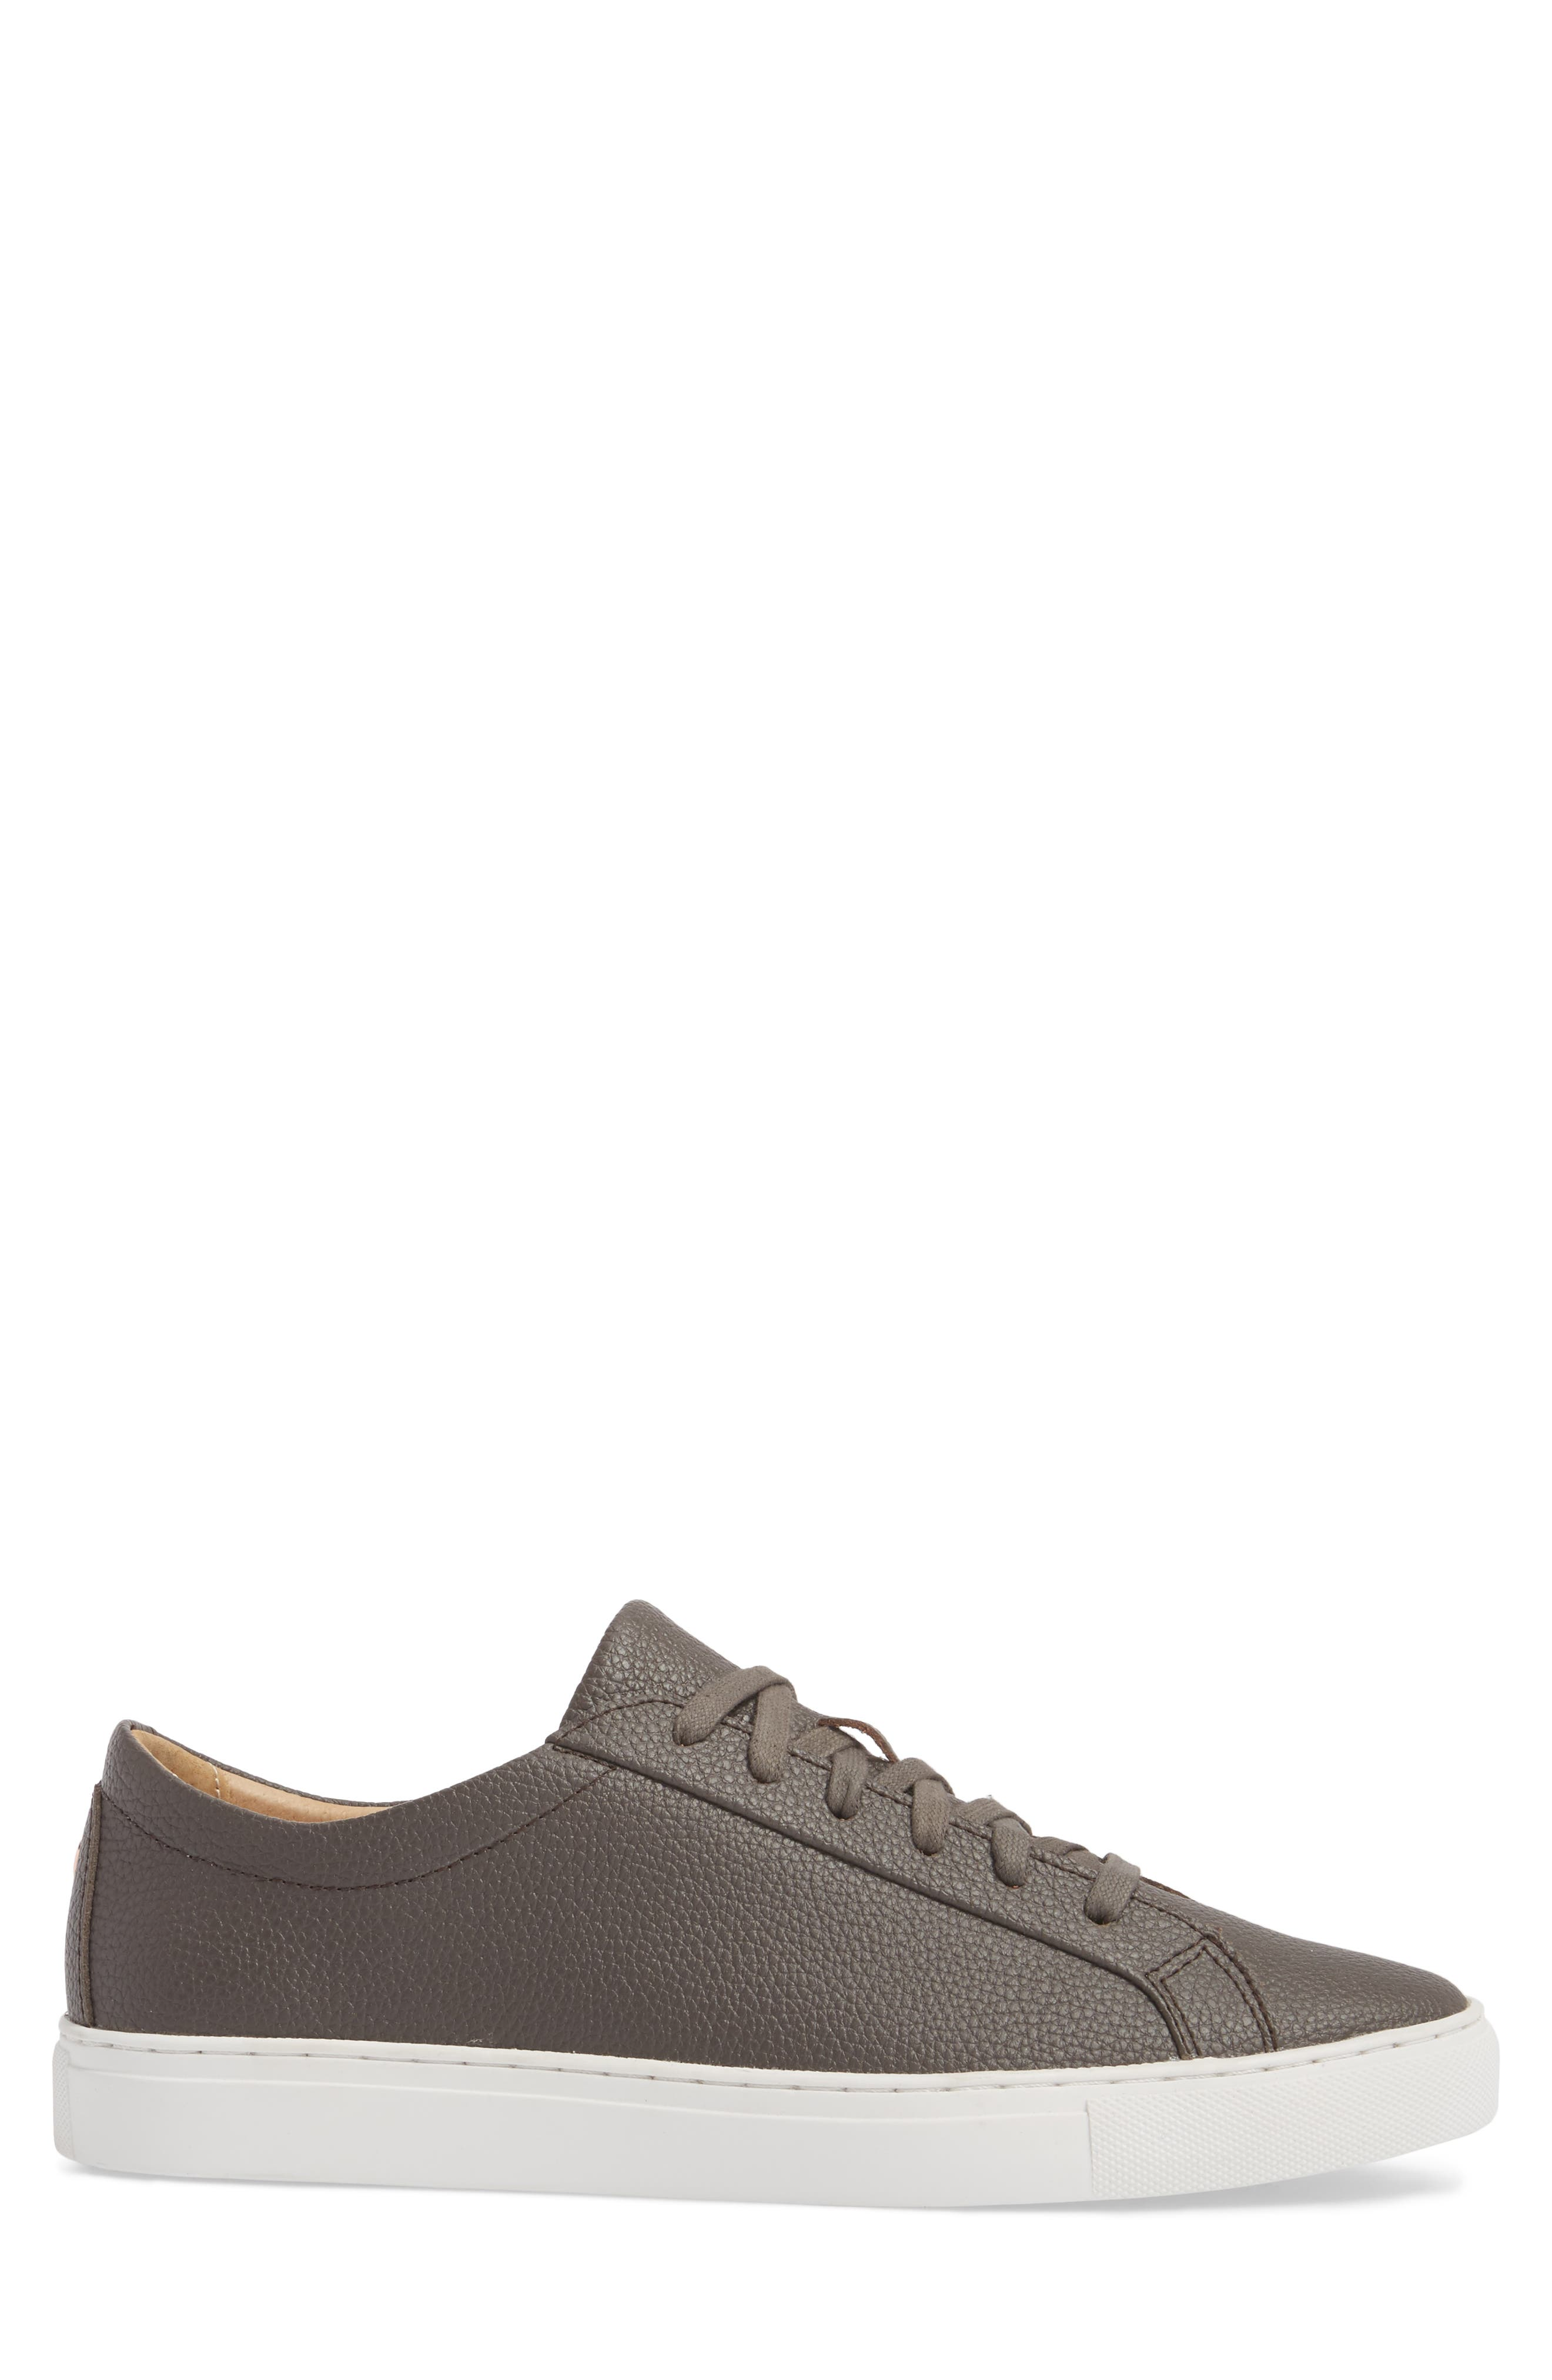 Kennedy Low Top Sneaker,                             Alternate thumbnail 3, color,                             Falcon Leather